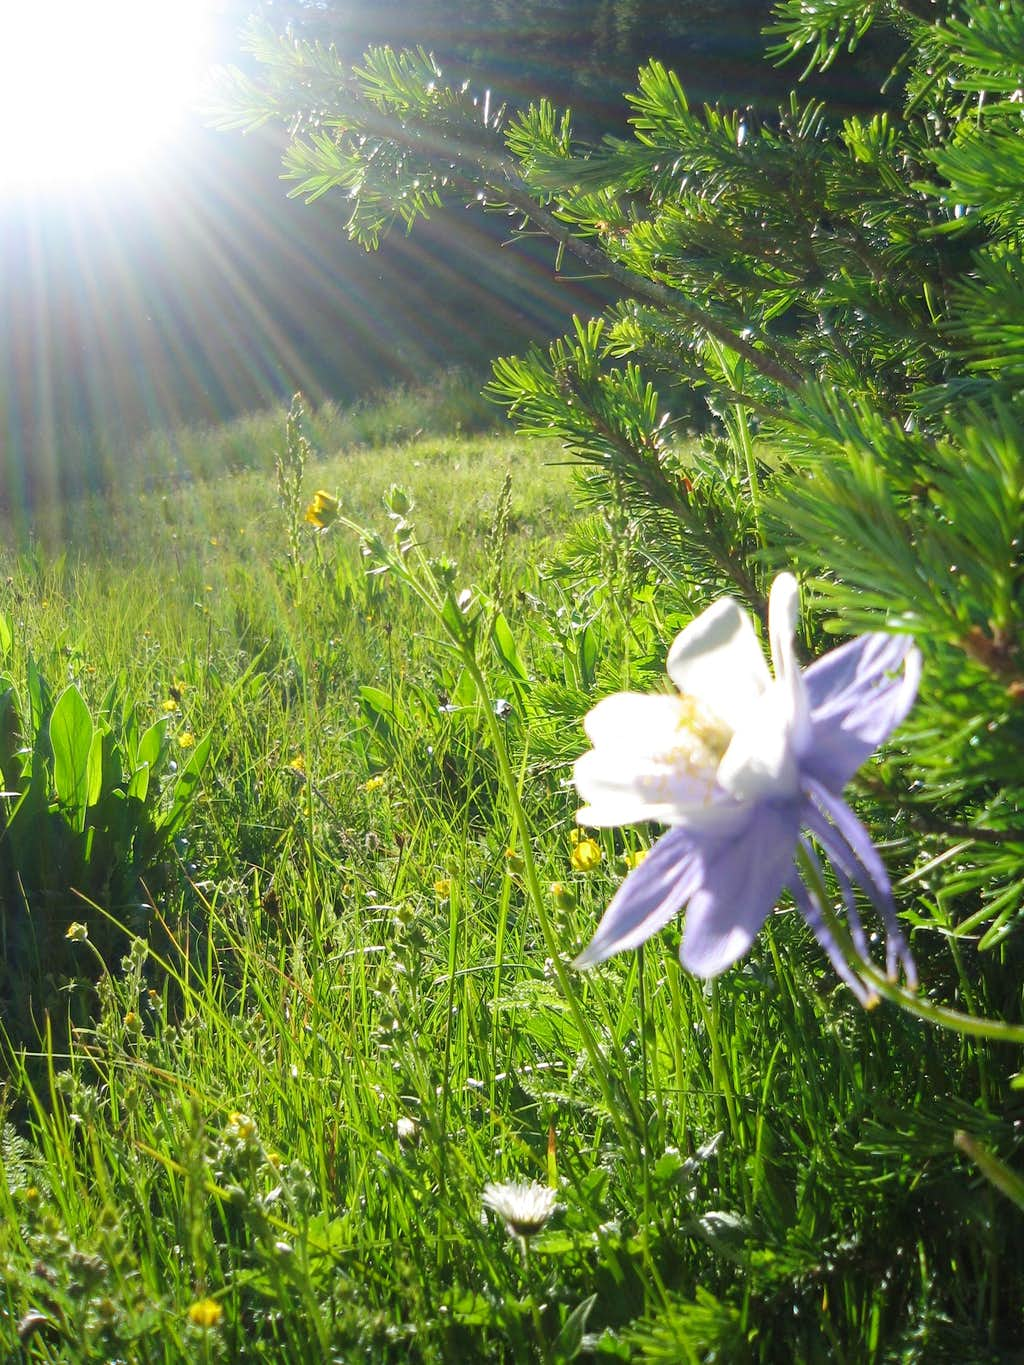 Morning flower en route to Sunlight